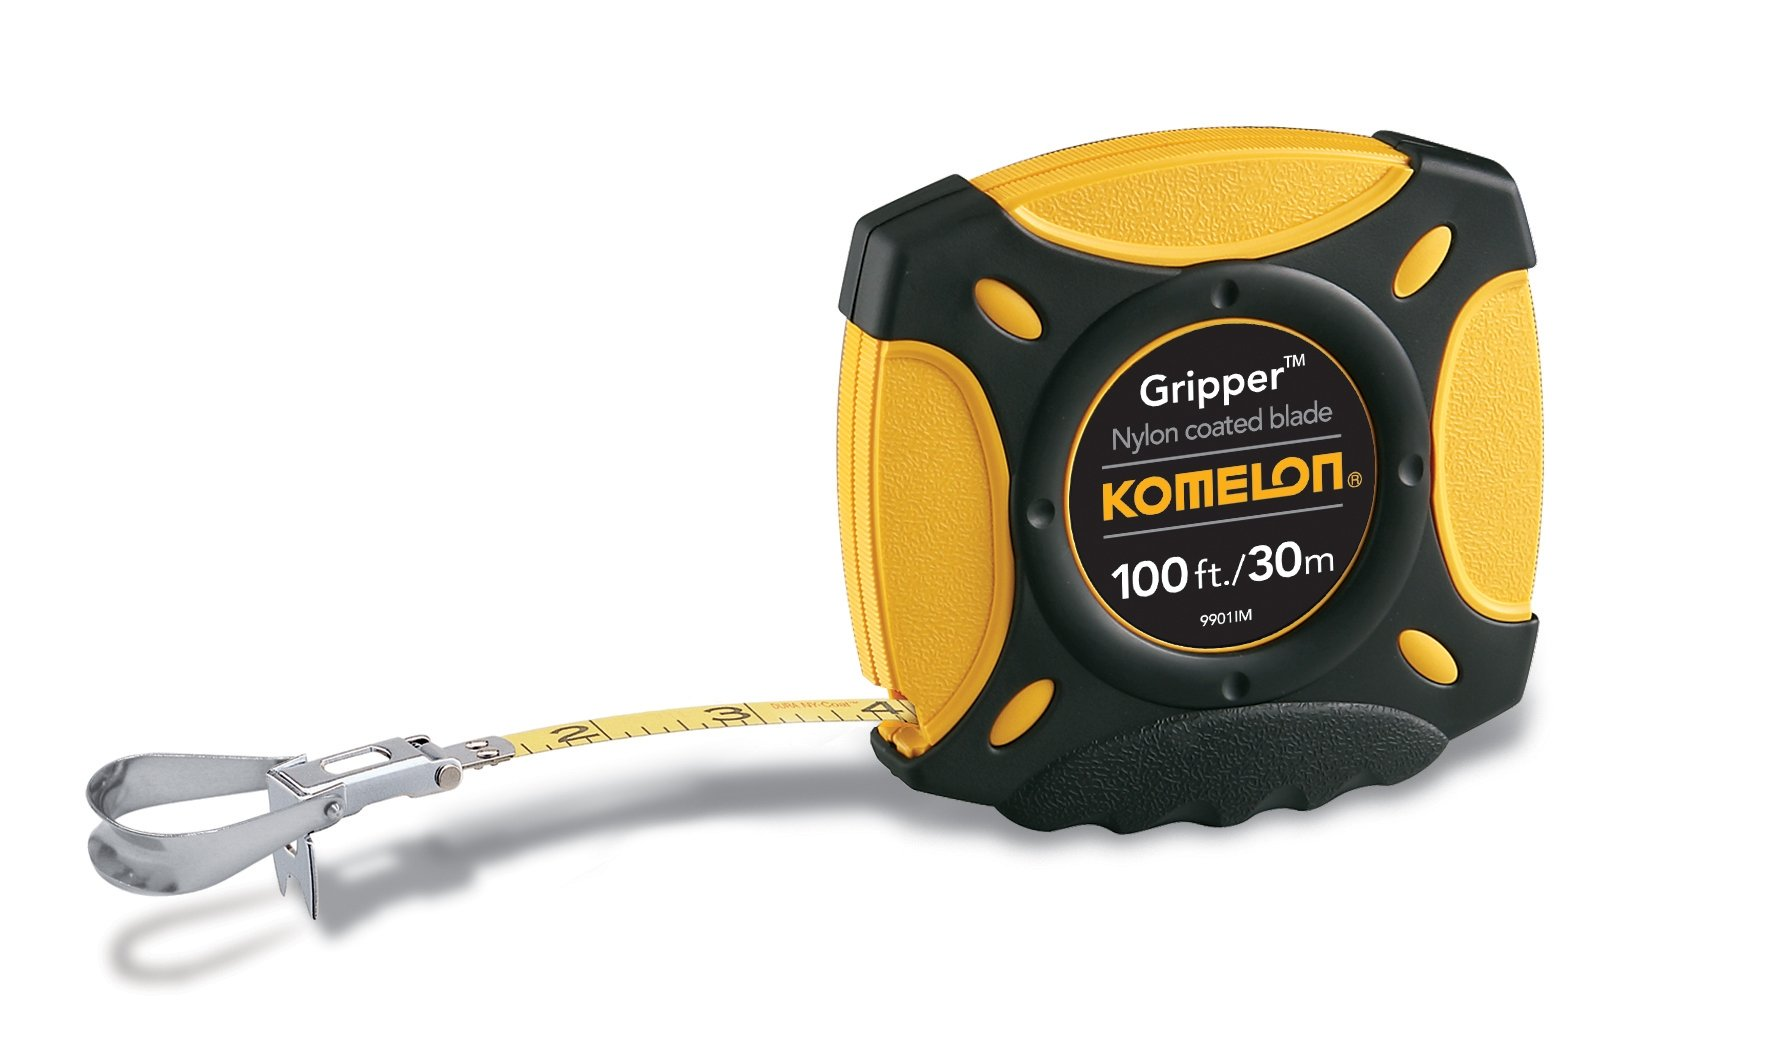 Komelon 9901IM Gripper Closed Case Long Tape Measure Inch/Metric Scale with Nylon Coated Steel Blade 100-Inch by 3/8-Inch